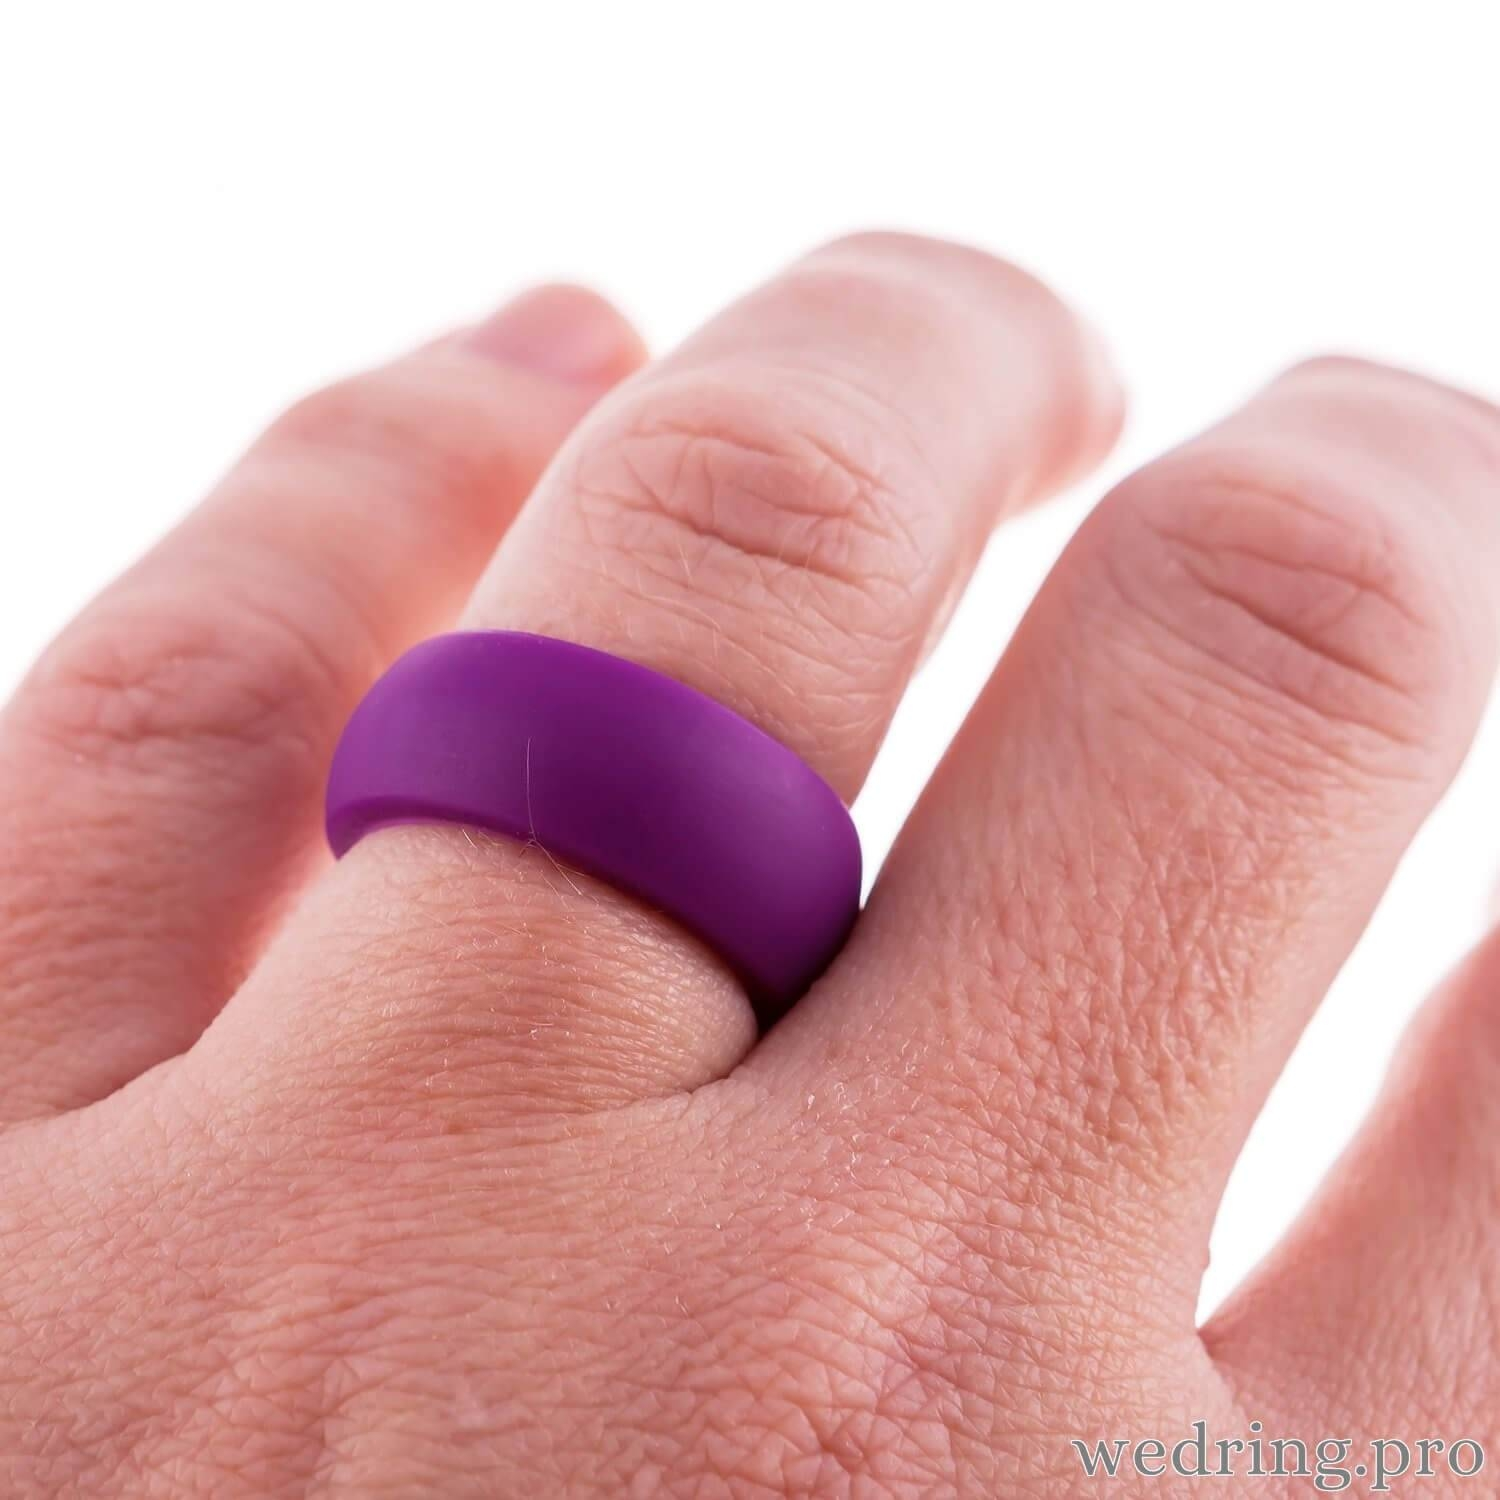 Plastic Wedding Rings As Party Favors For Plastic Wedding Bands (Gallery 10 of 15)